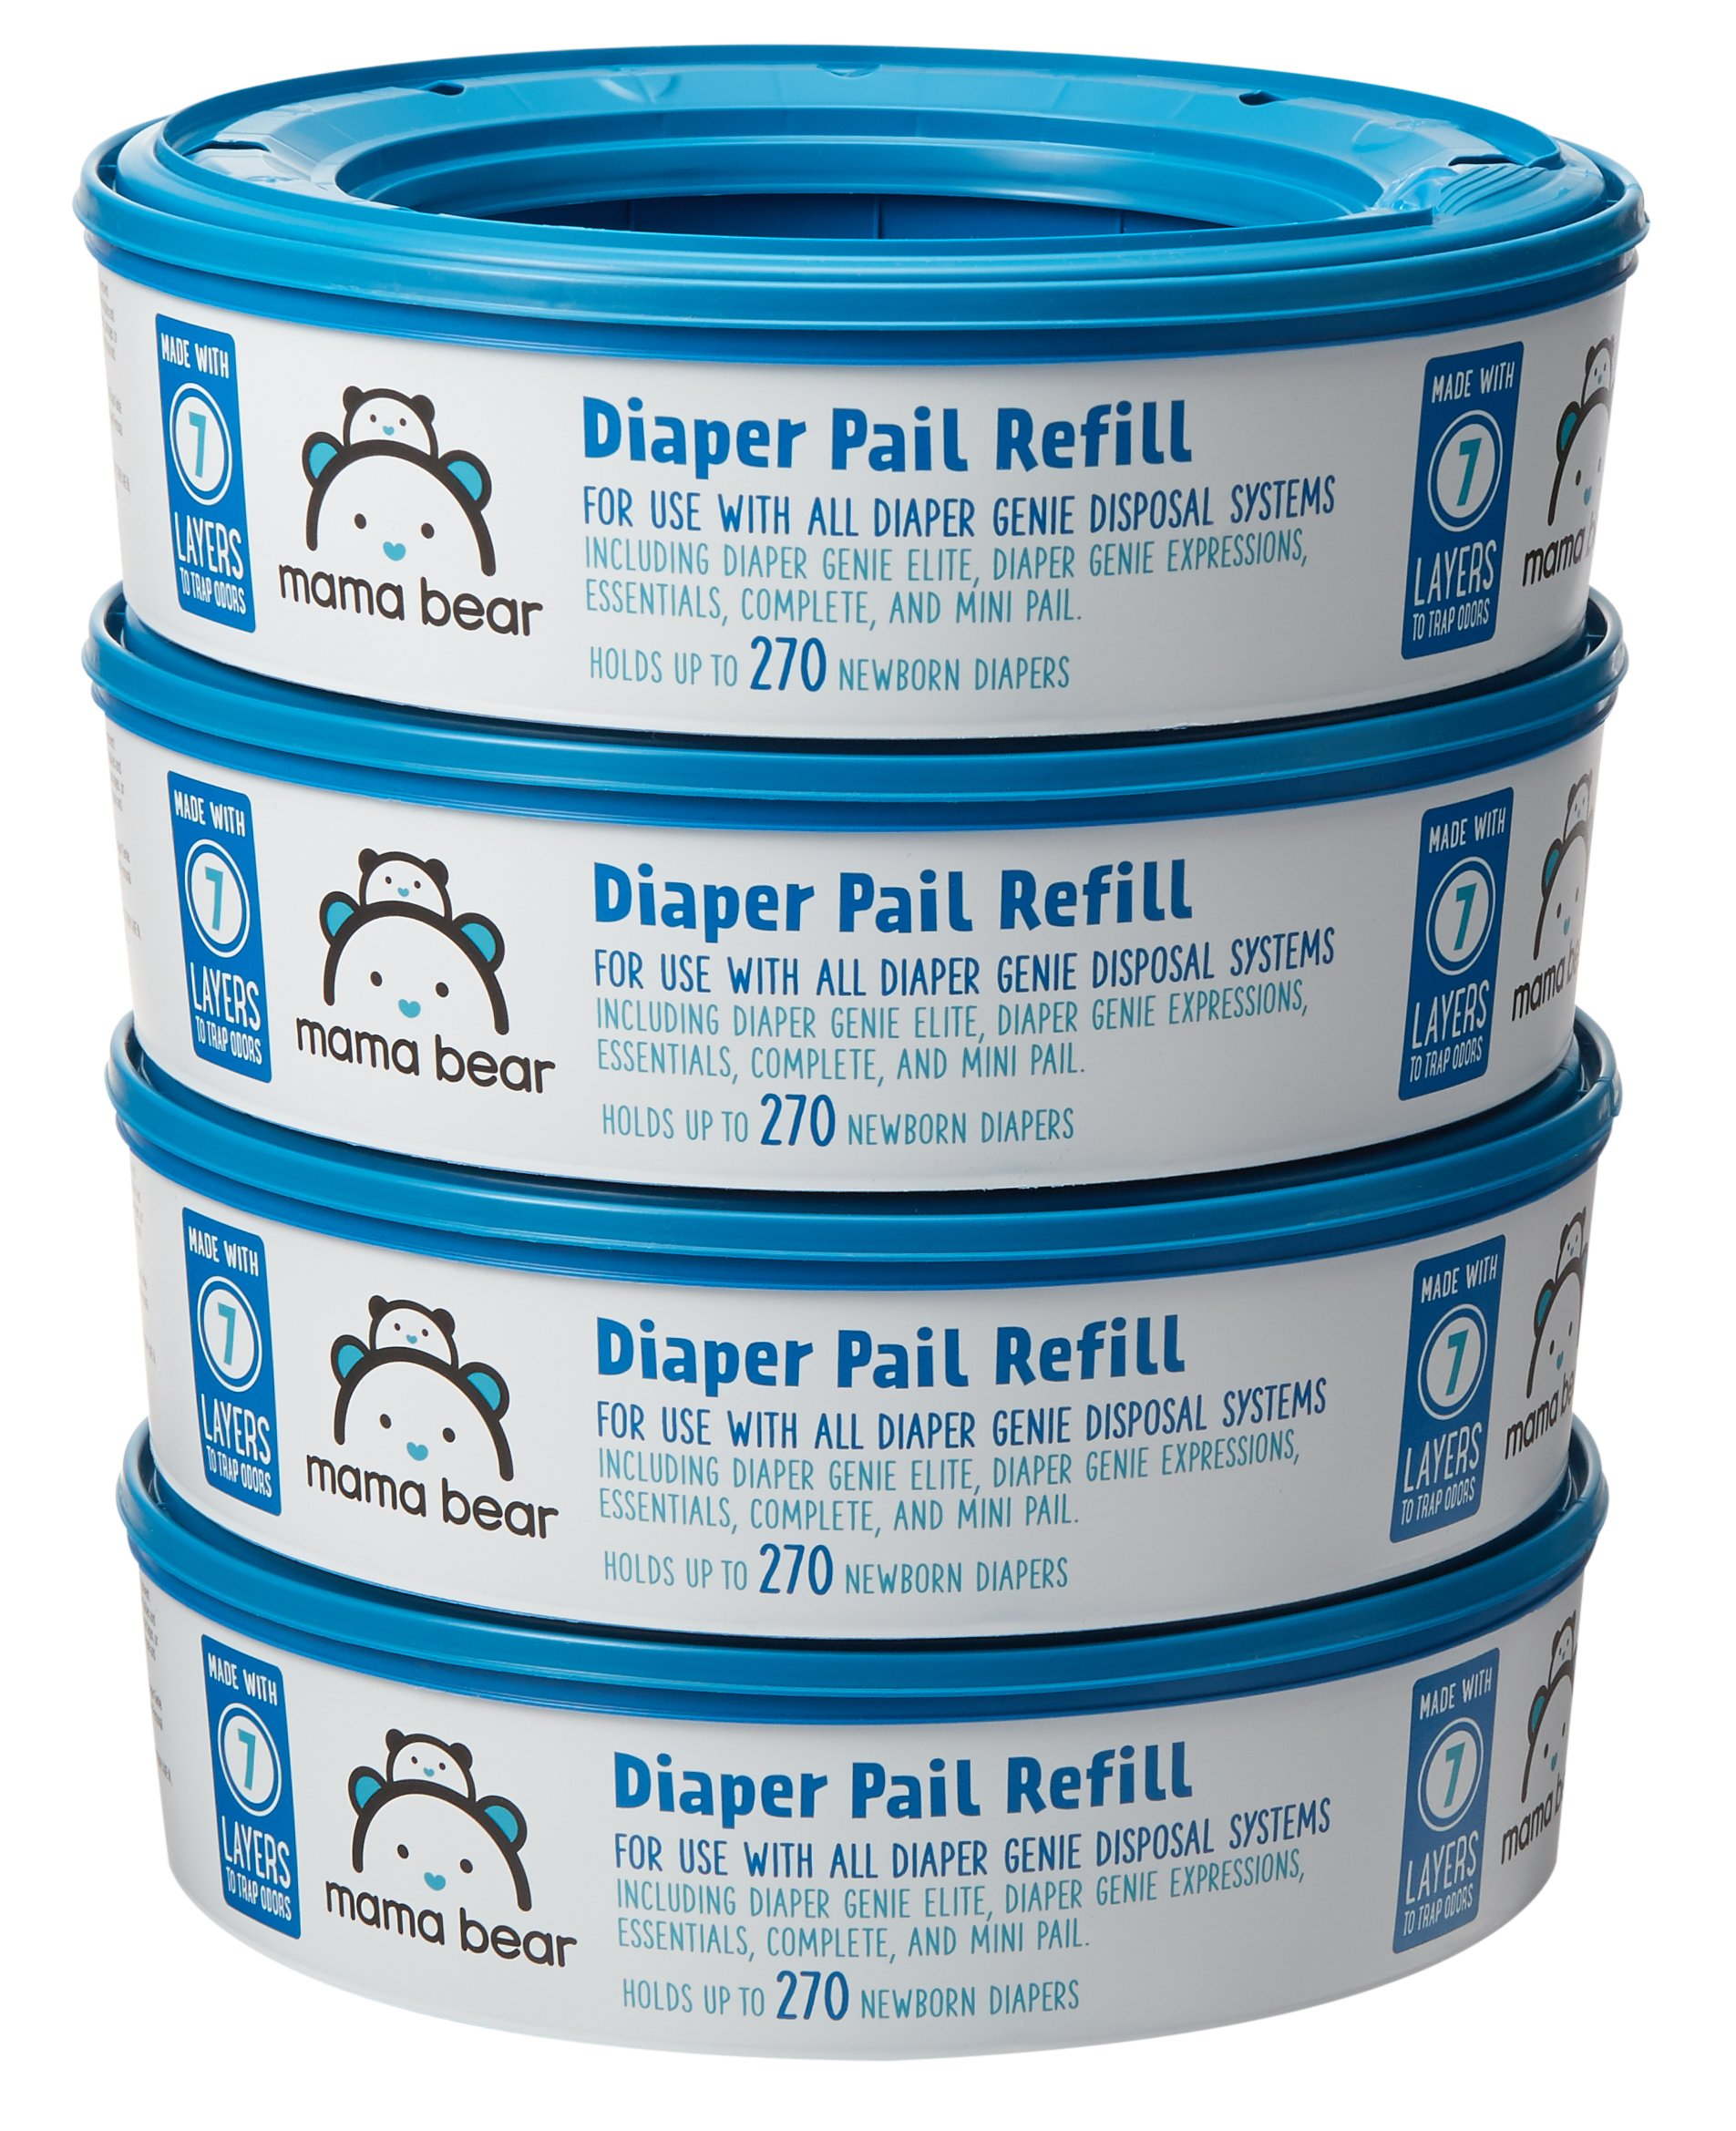 Amazon Brand - Mama Bear Diaper Pail Refills for Diaper Genie Pails, 1080 Count (Pack of 4) by Mama Bear